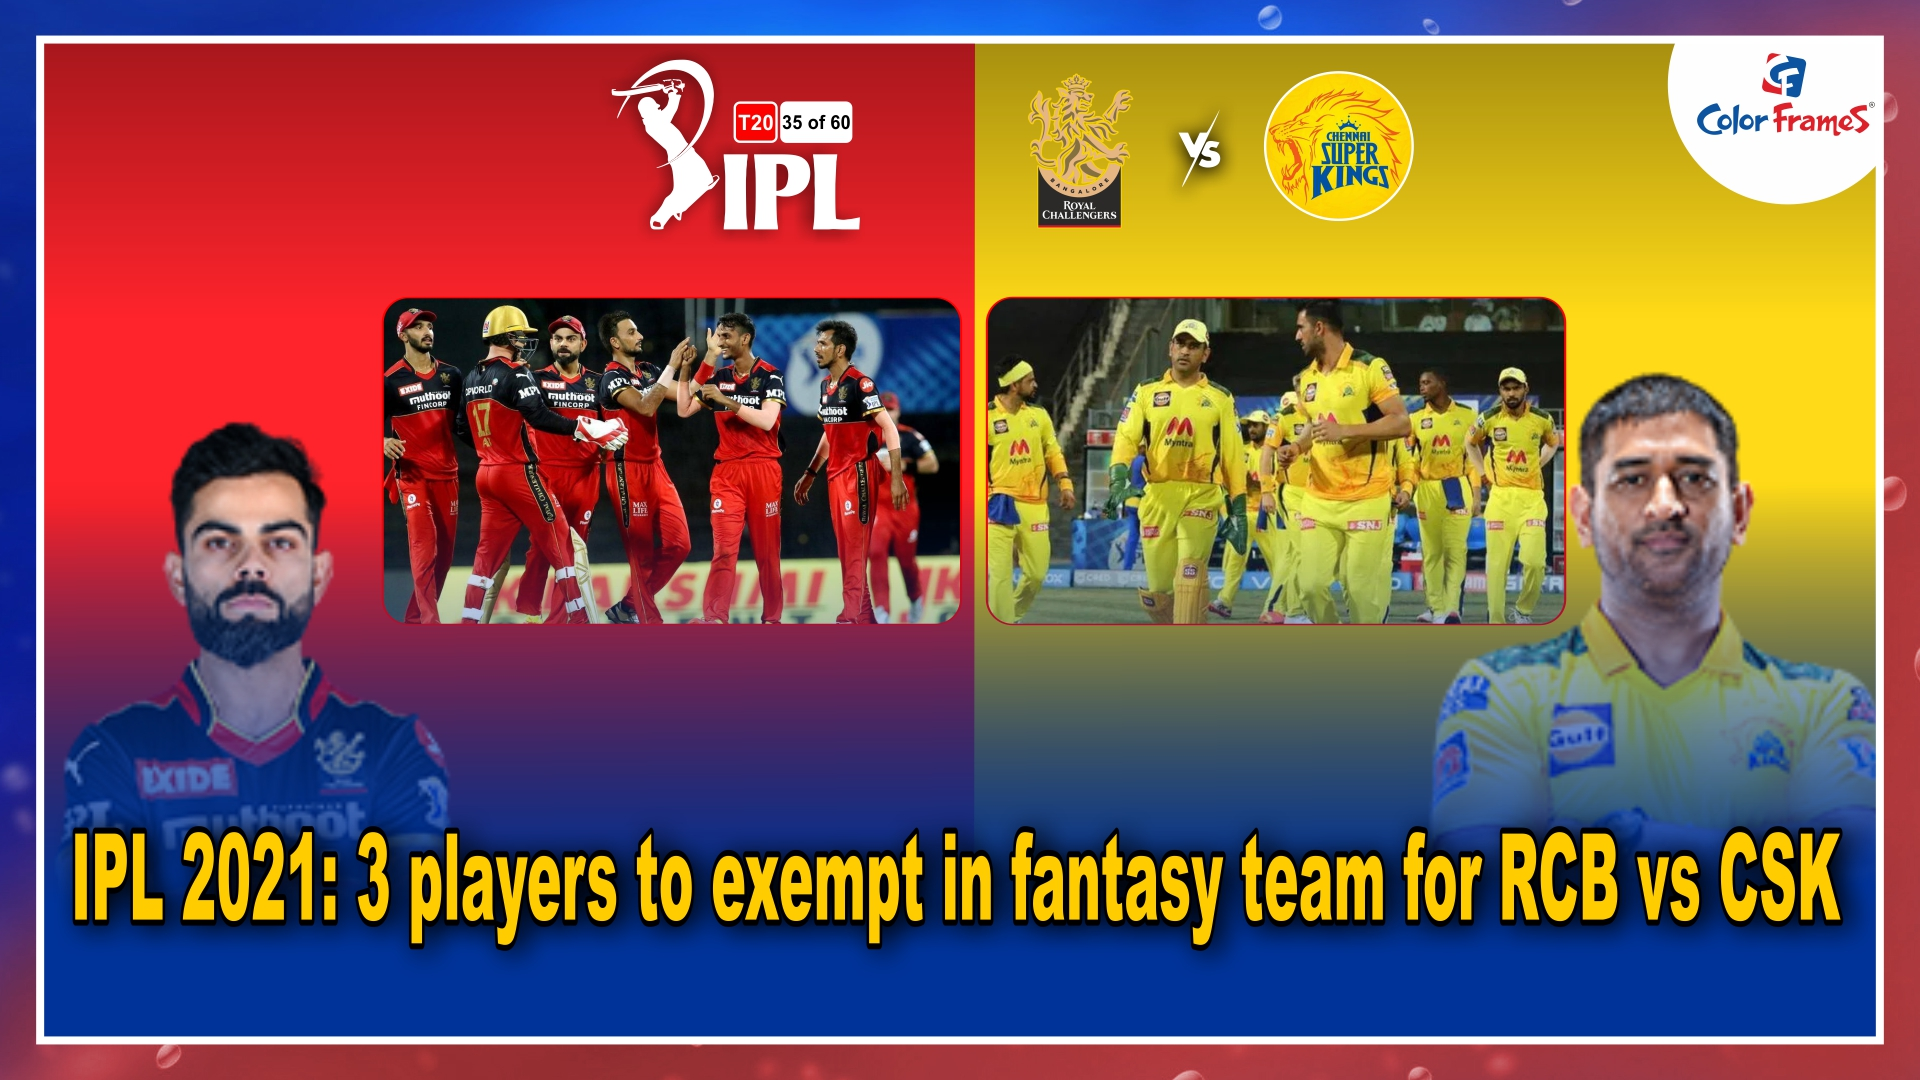 IPL 2021: 3 players to exempt in fantasy team for RCB vs CSK